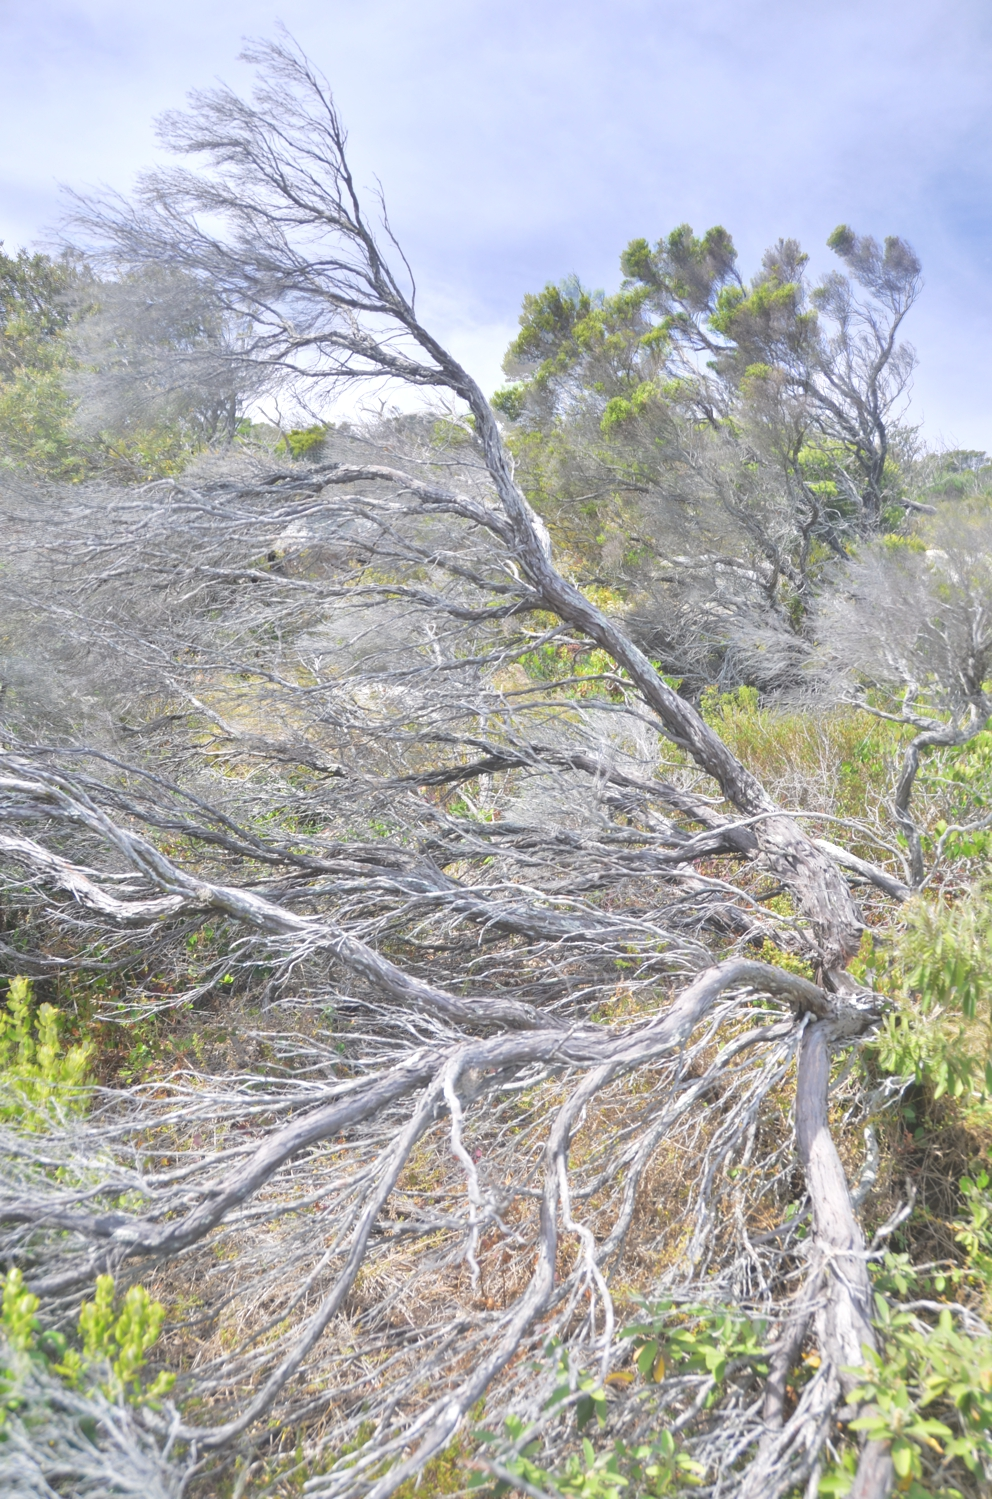 The trees and shrubs near the Cape of Good Hope bear the scars of high winds, which are often gale-forced